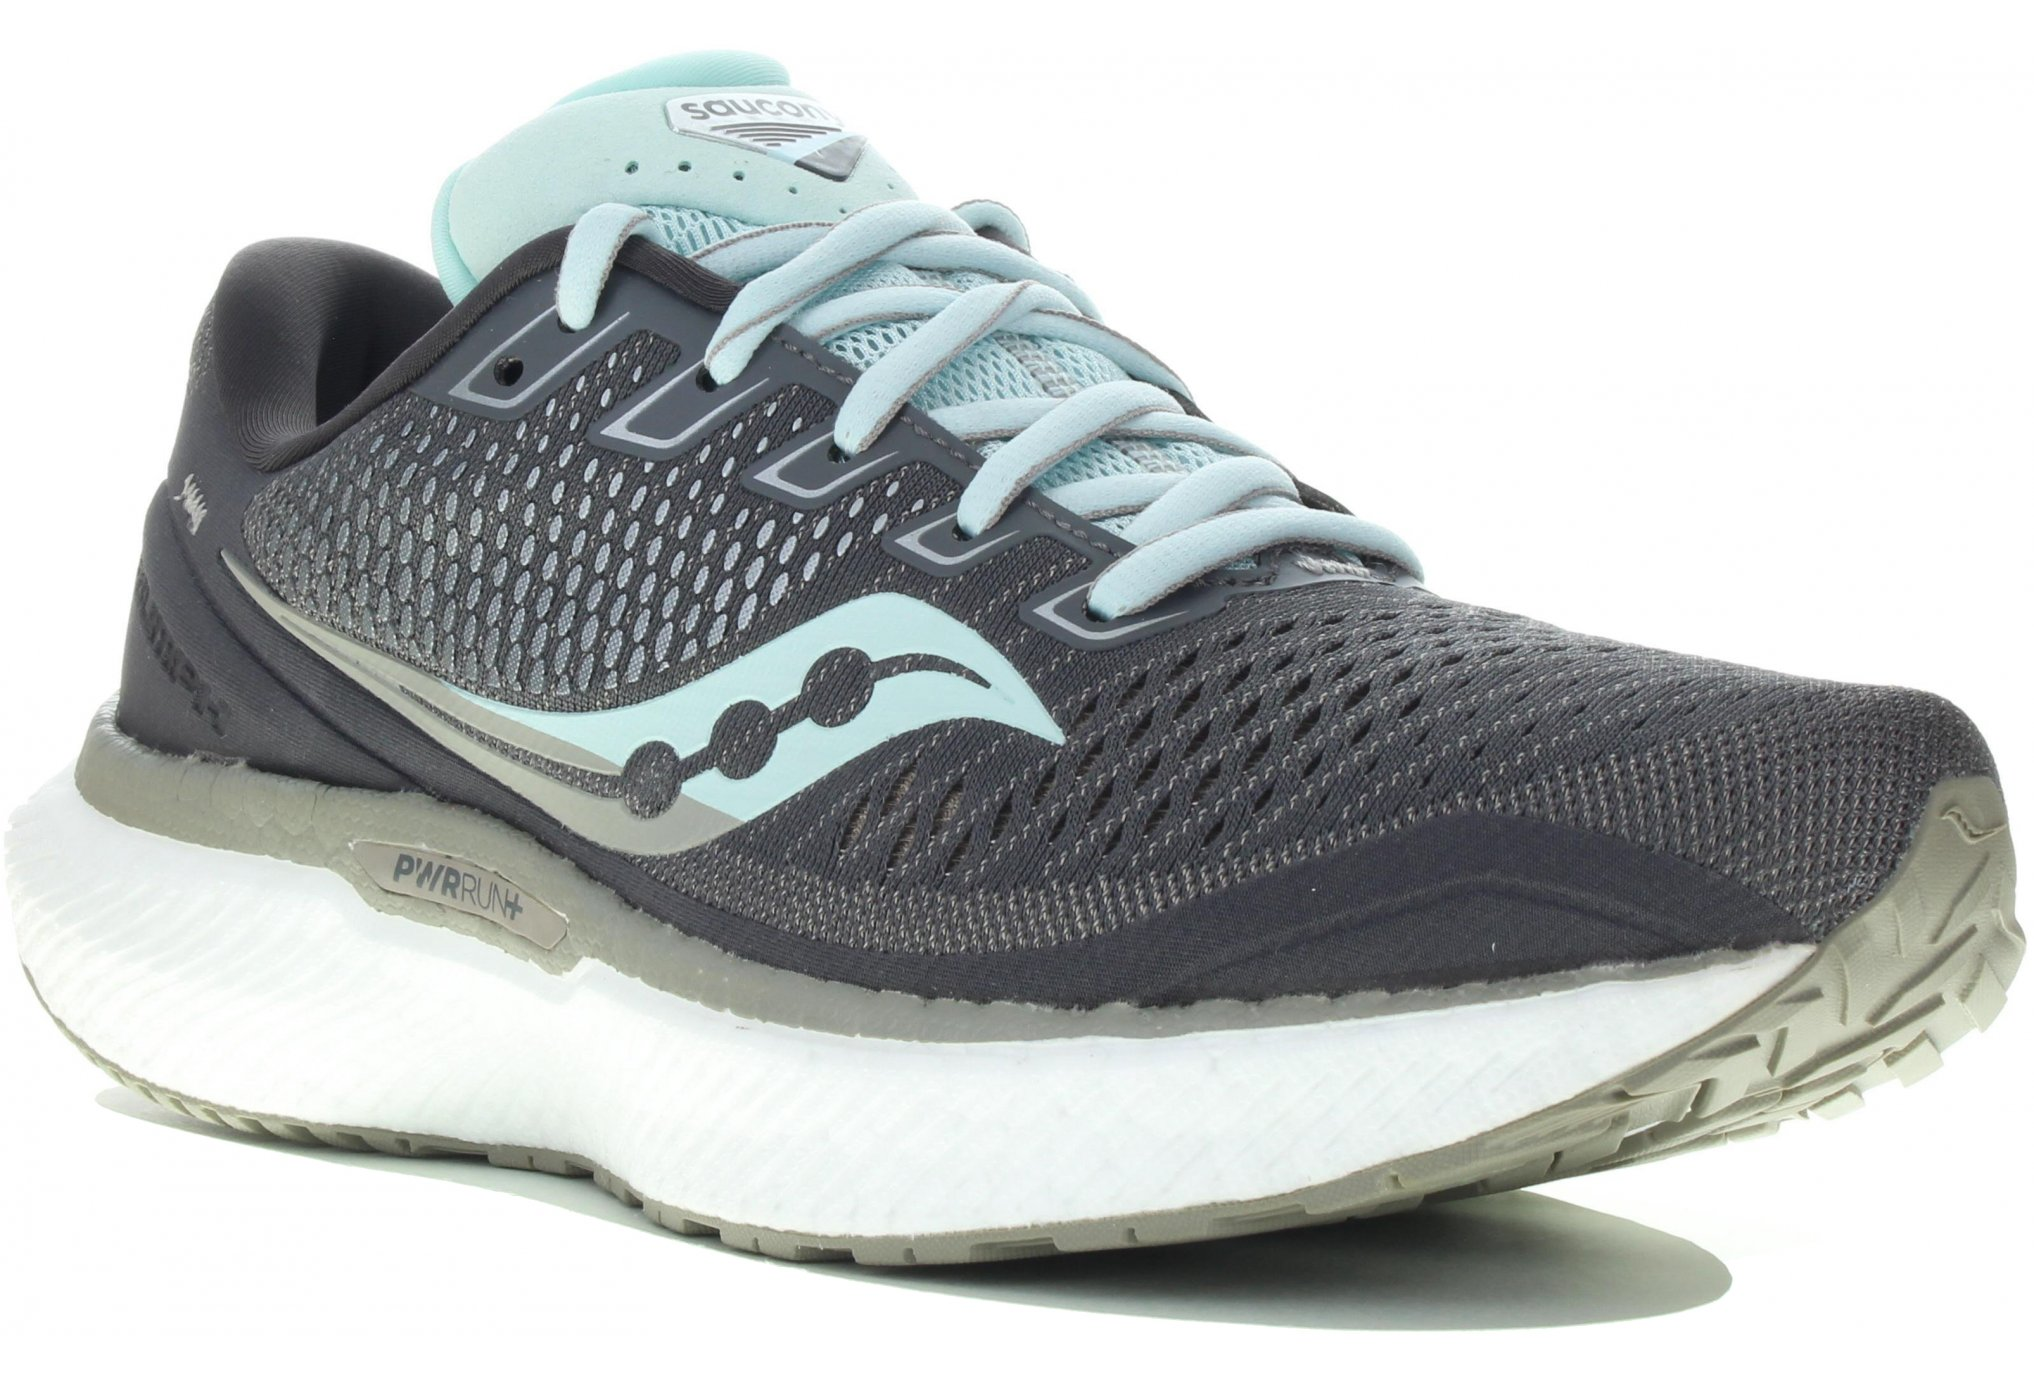 Saucony Triumph 18 Chaussures running femme